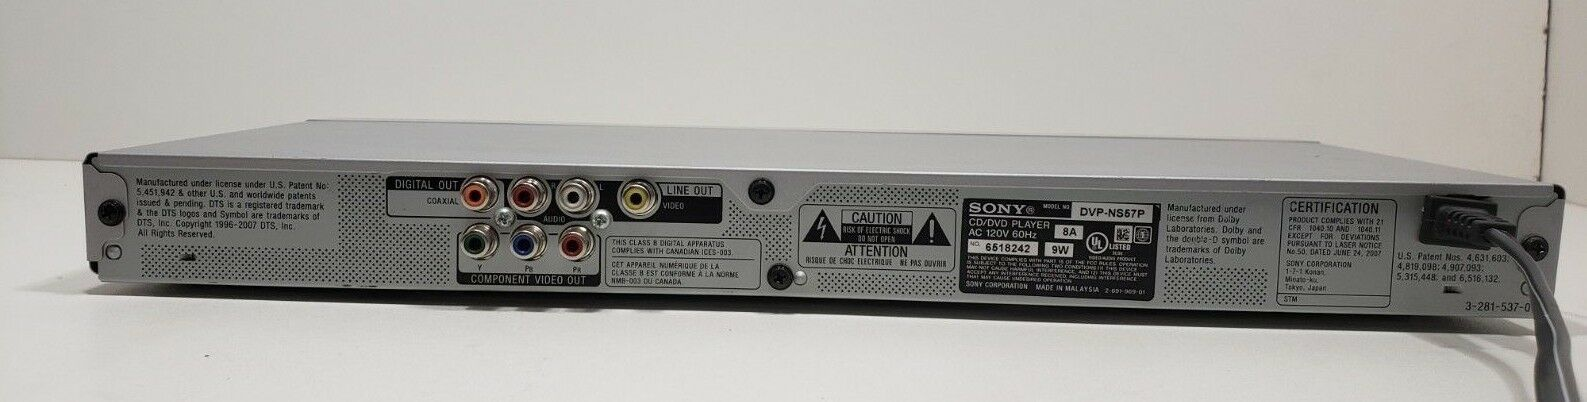 Sony CD/DVD Player DVP-NS57P with Remote... Tested image 6